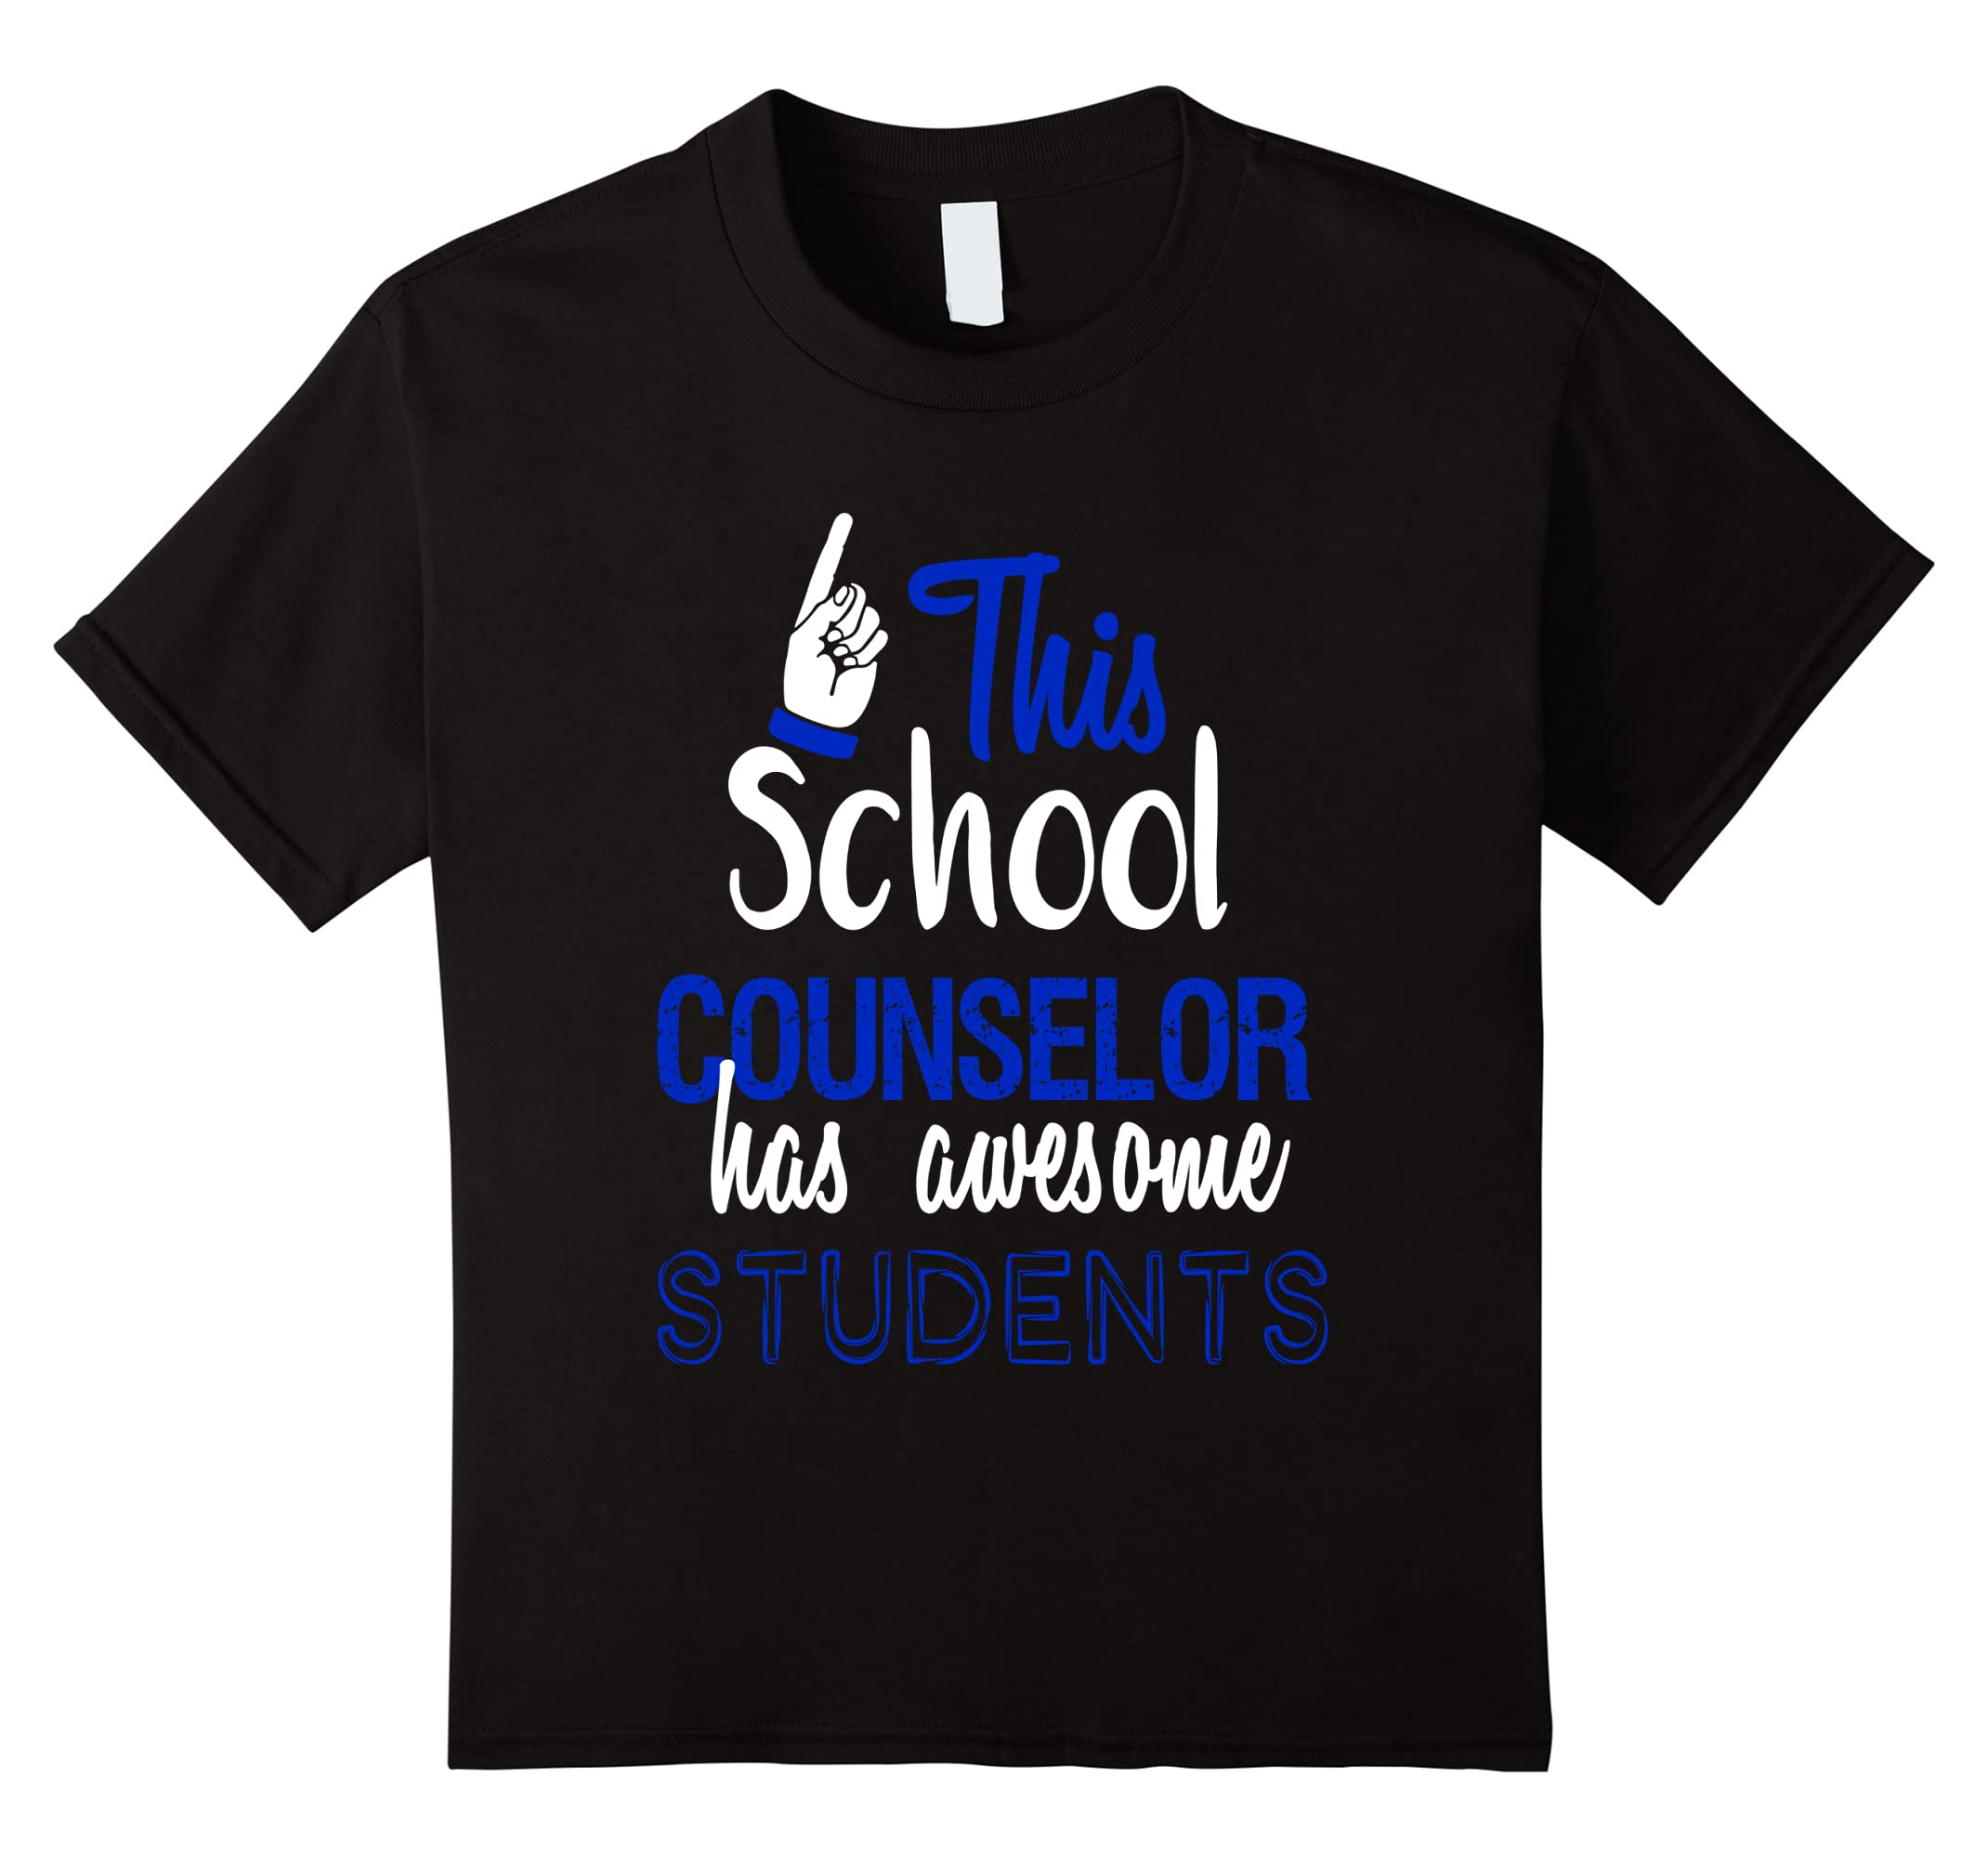 School Counselor Awesome Students T Shirt-Xalozy